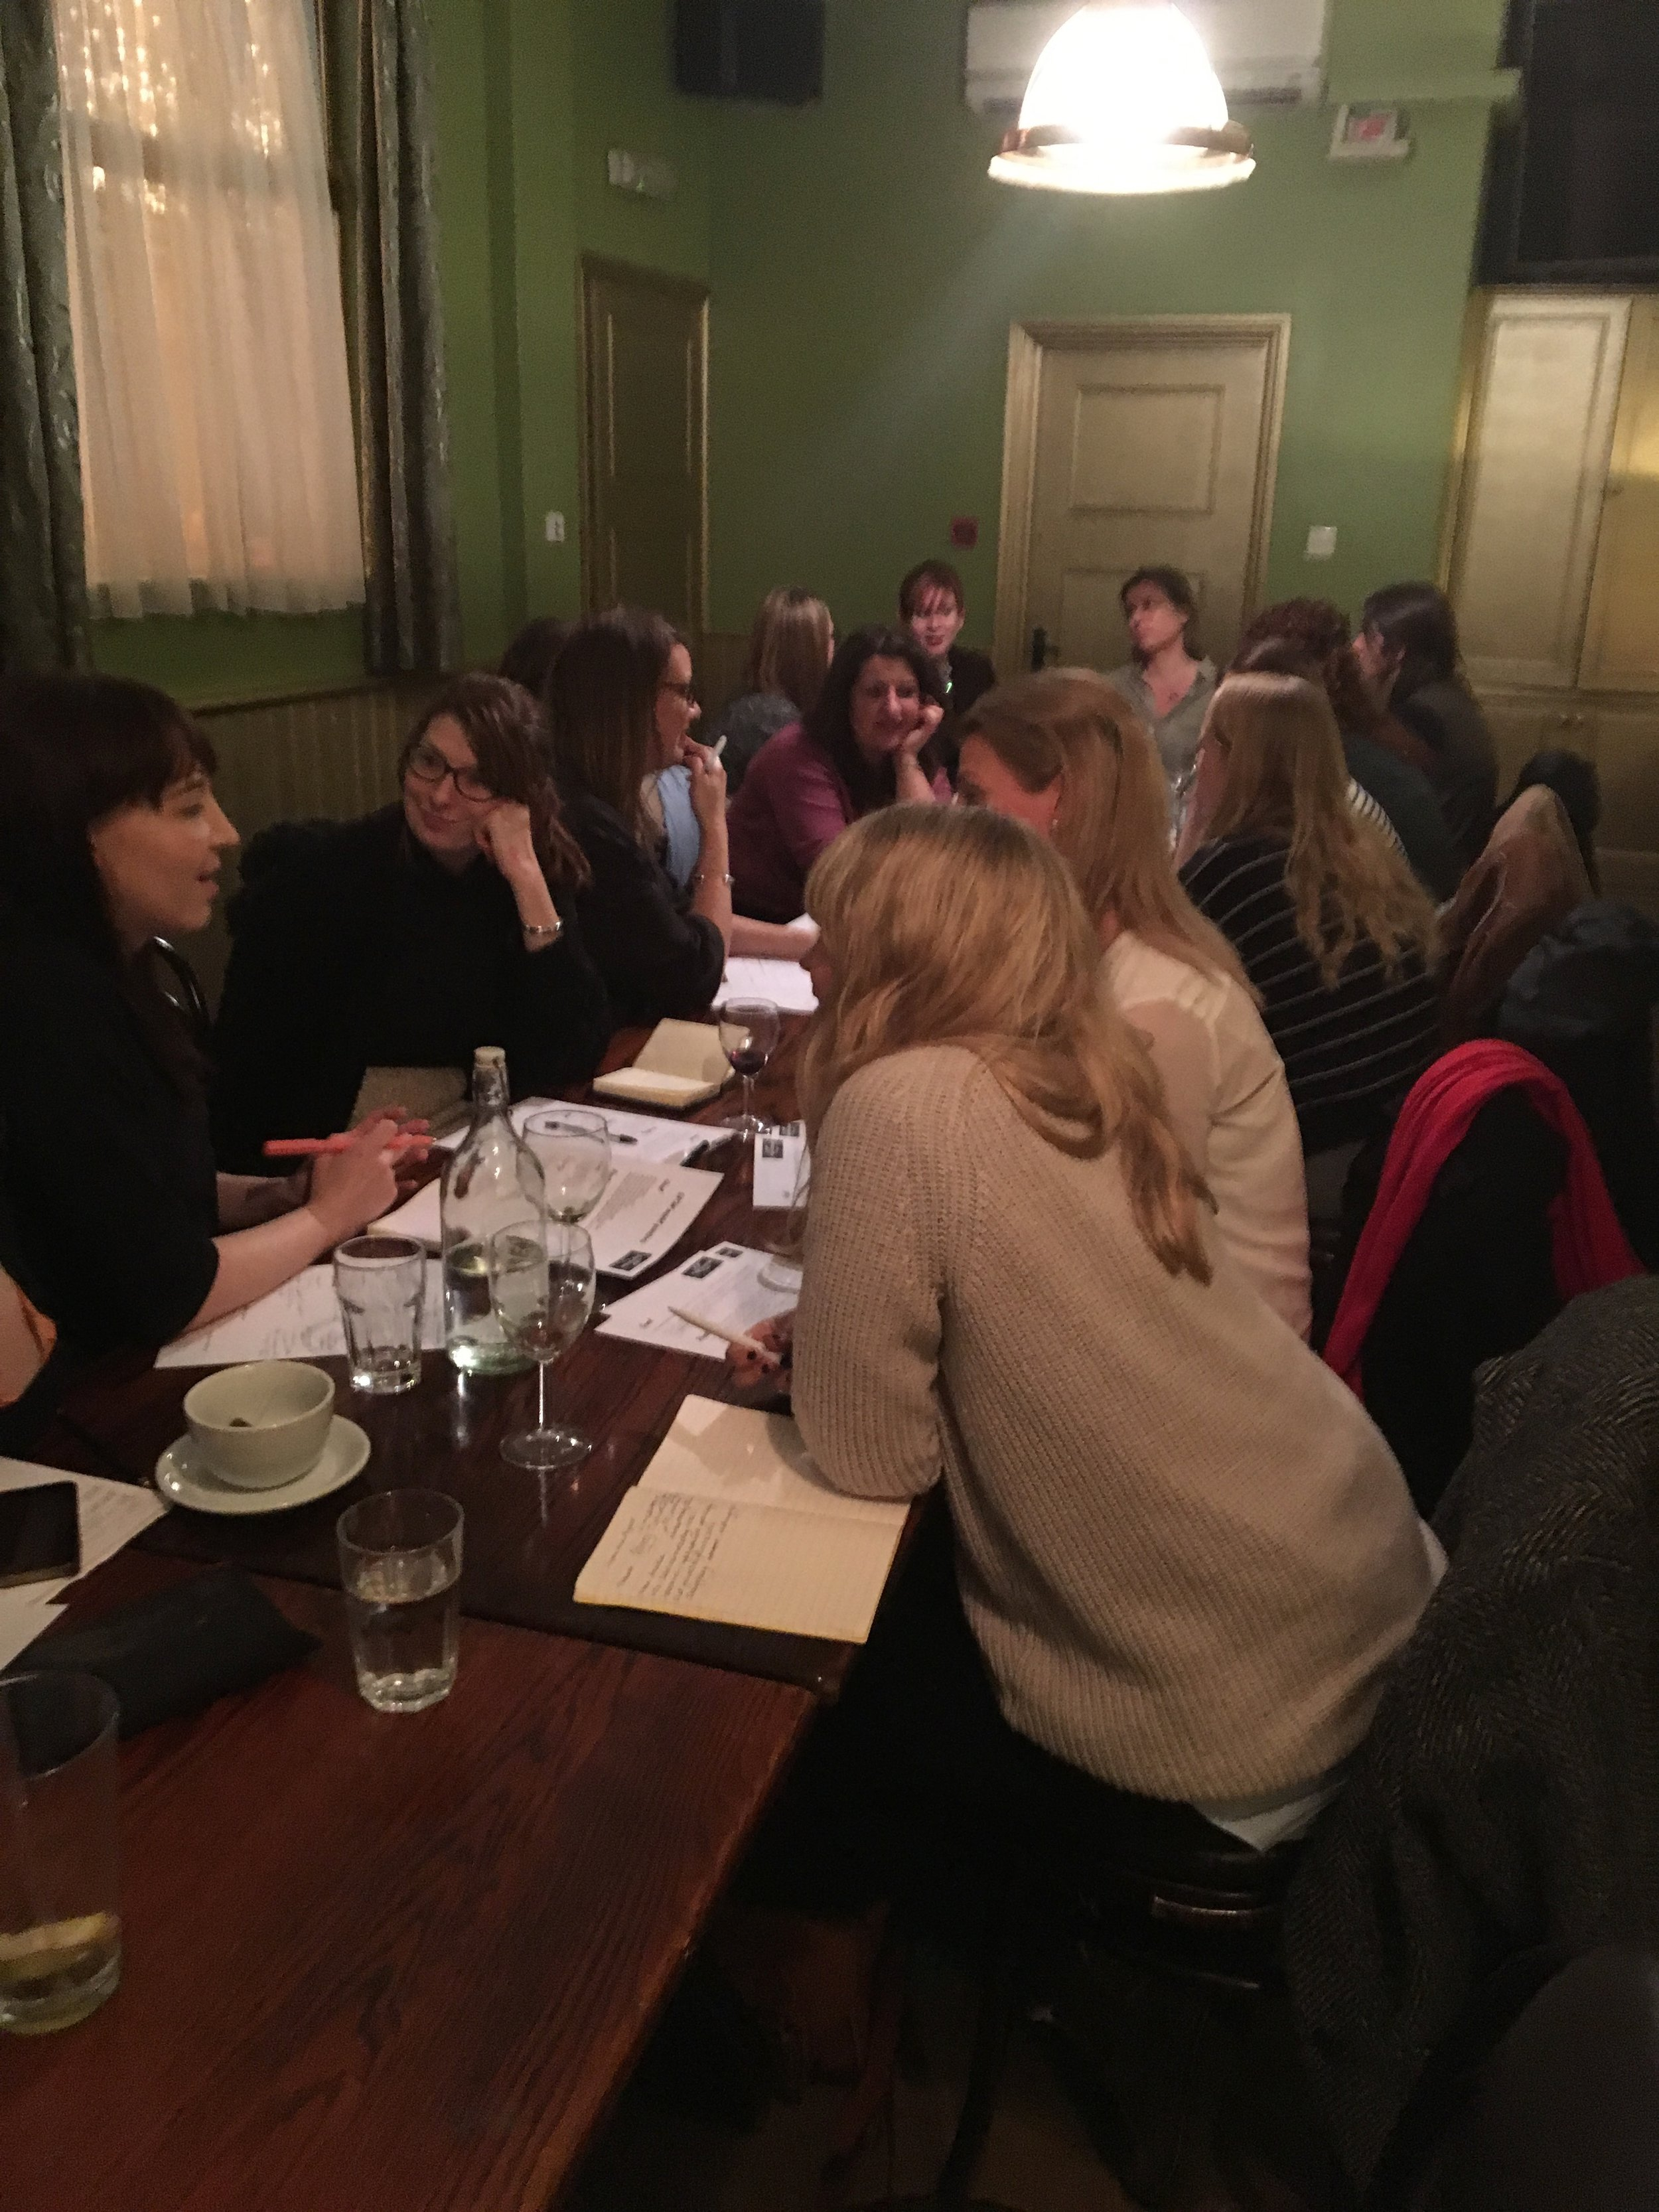 Some fabulous superwomen getting stuck into discussing their career goals